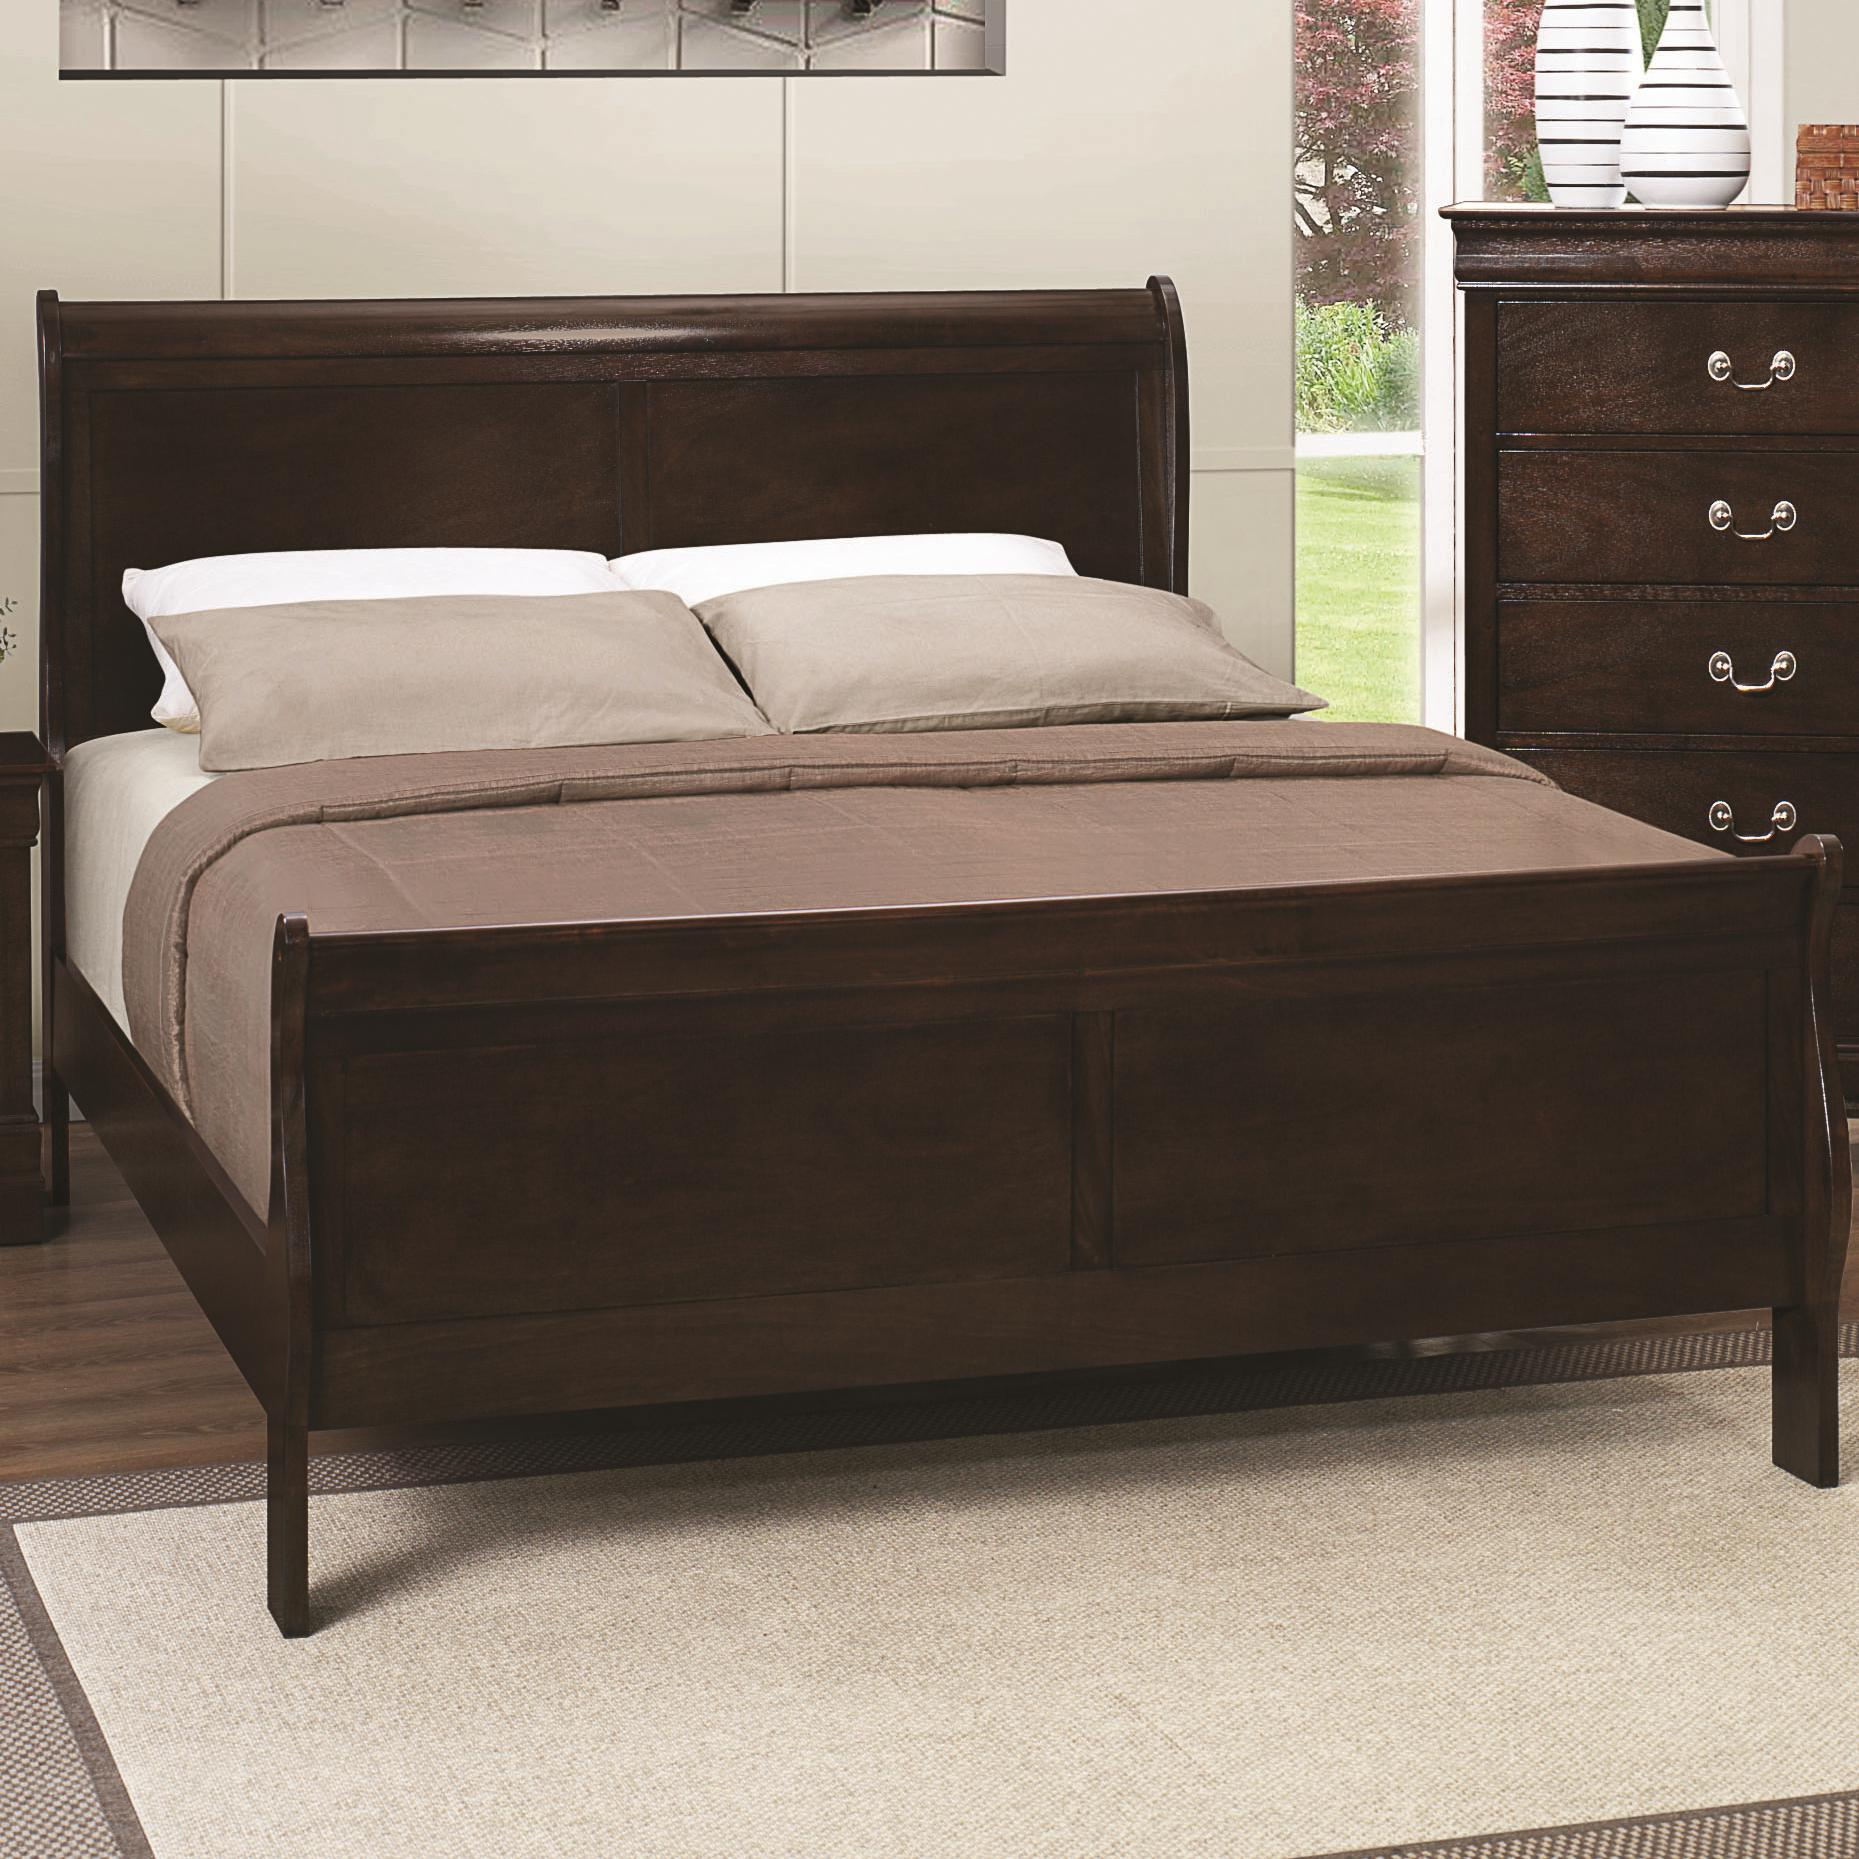 Coaster Louis Philippe 202 Queen Sleigh Bed - Item Number: 202411Q